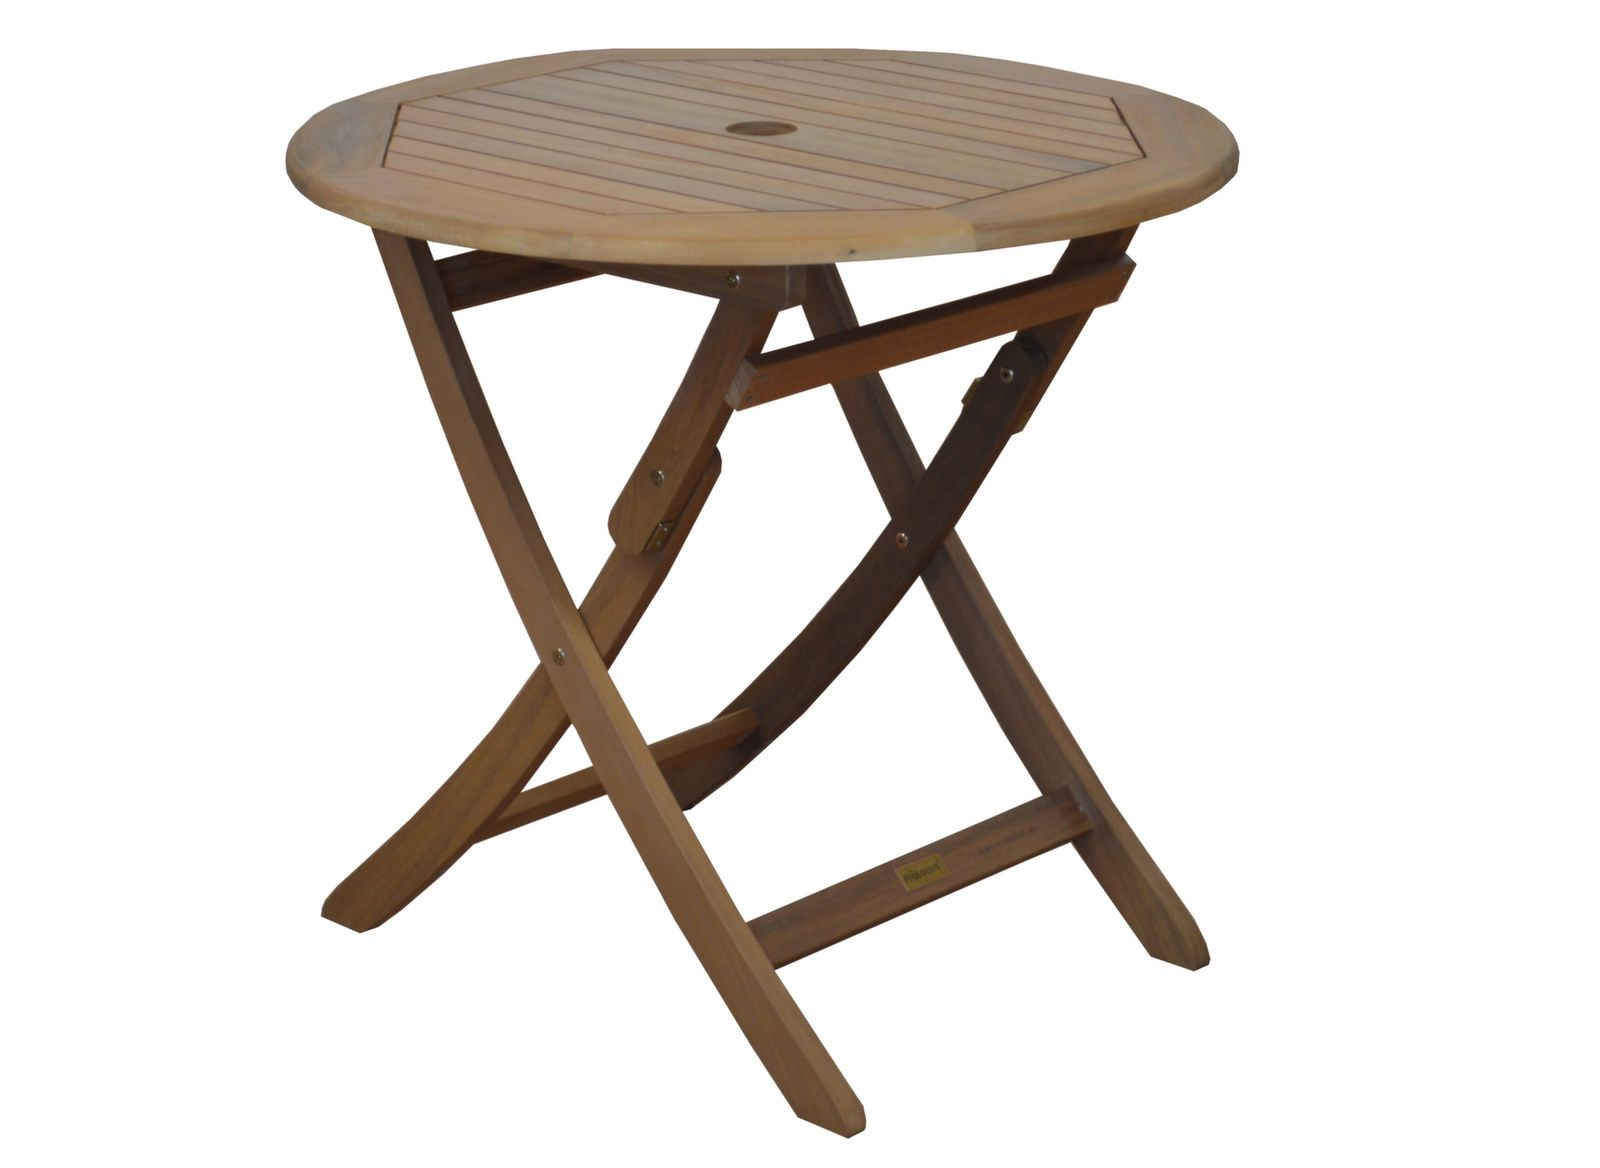 table de jardin ronde en bois sophie 80cm gamme aliz proloisirs. Black Bedroom Furniture Sets. Home Design Ideas